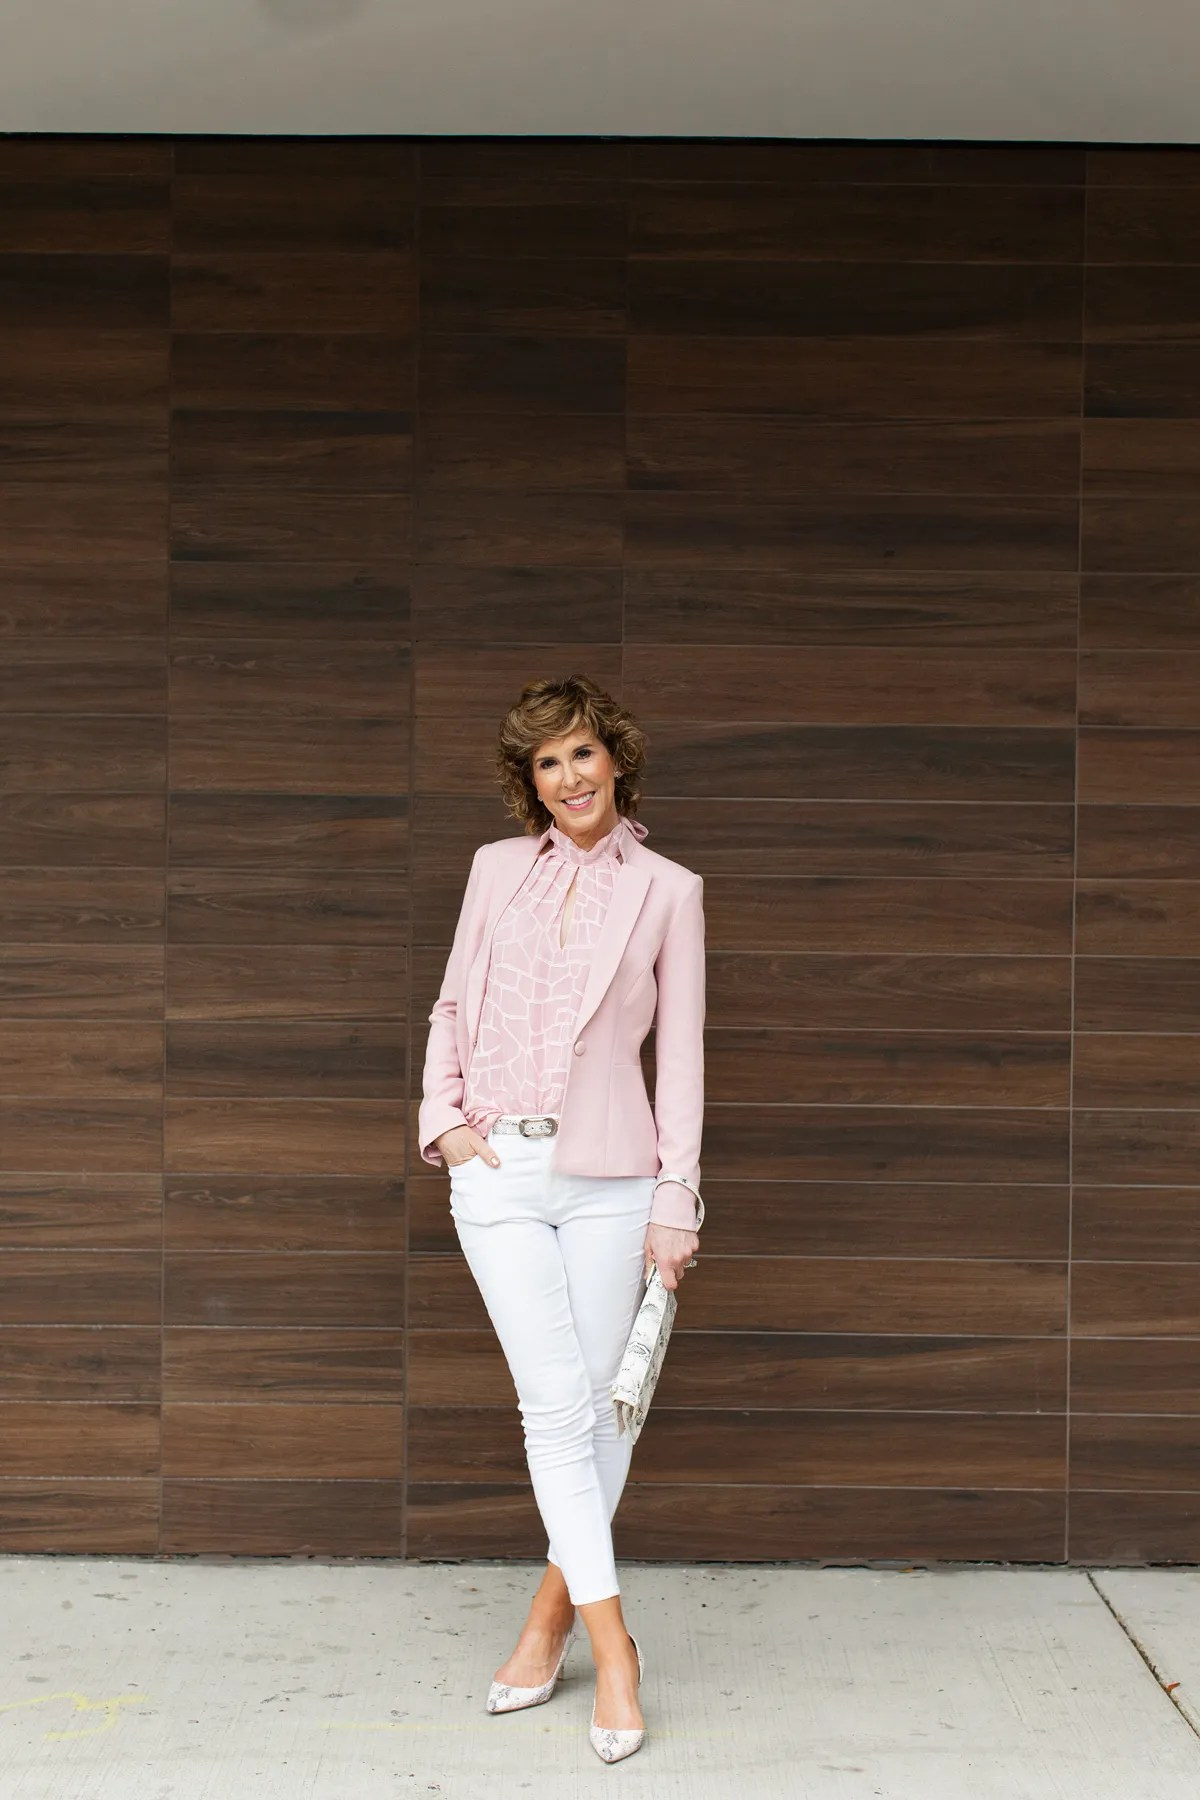 woman over fifty wearing pink top and blazer standing in front of a brown wall and looking at the camera